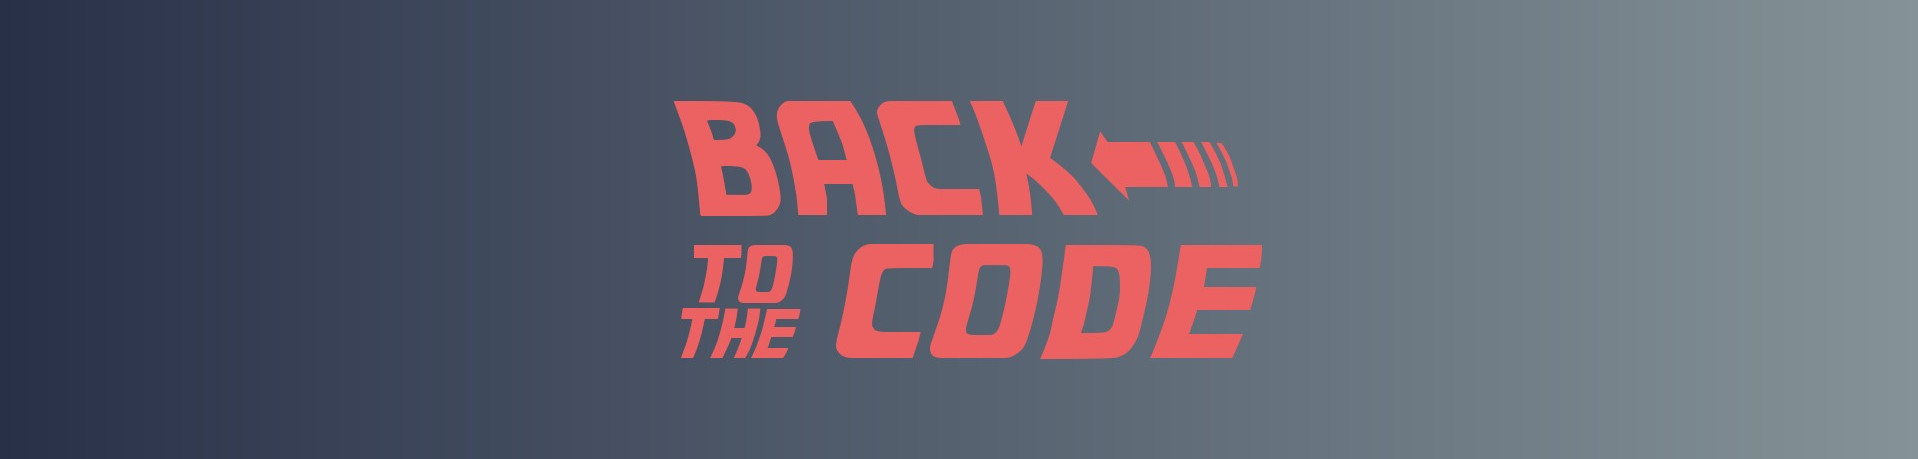 Back to the Code Cover image